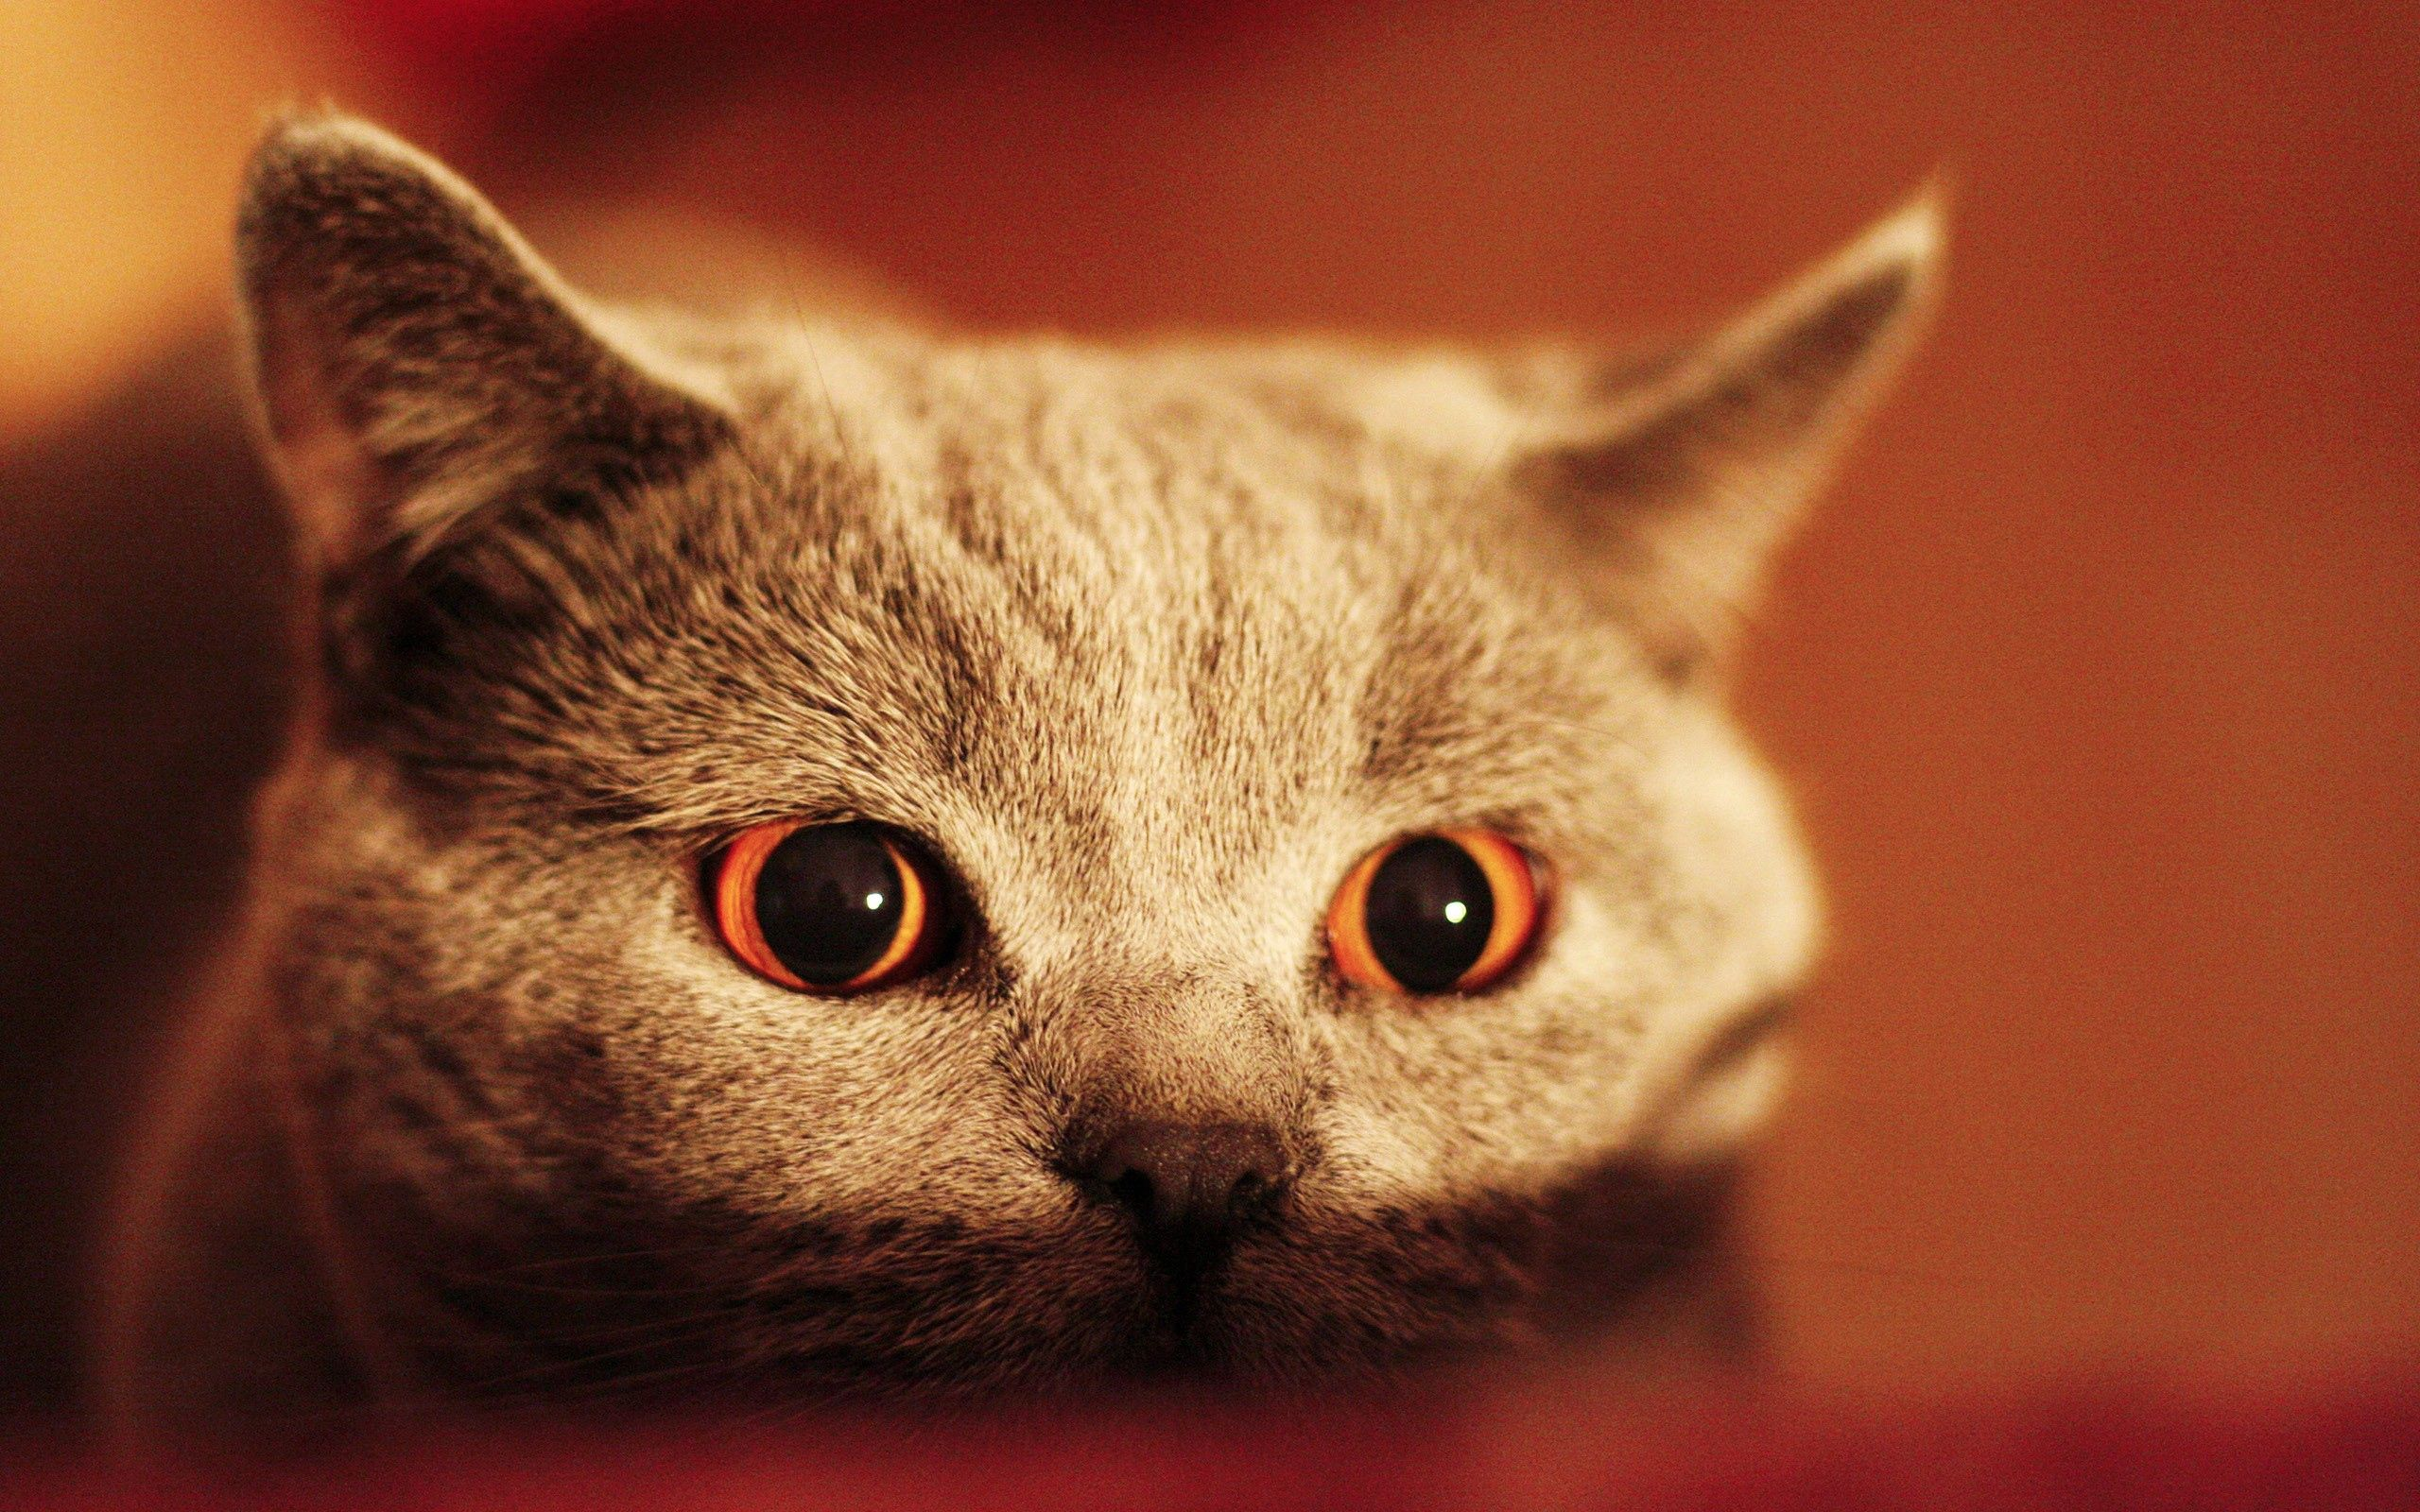 102309 download wallpaper Animals, Kitty, Kitten, Muzzle, Eyes, Sight, Opinion screensavers and pictures for free